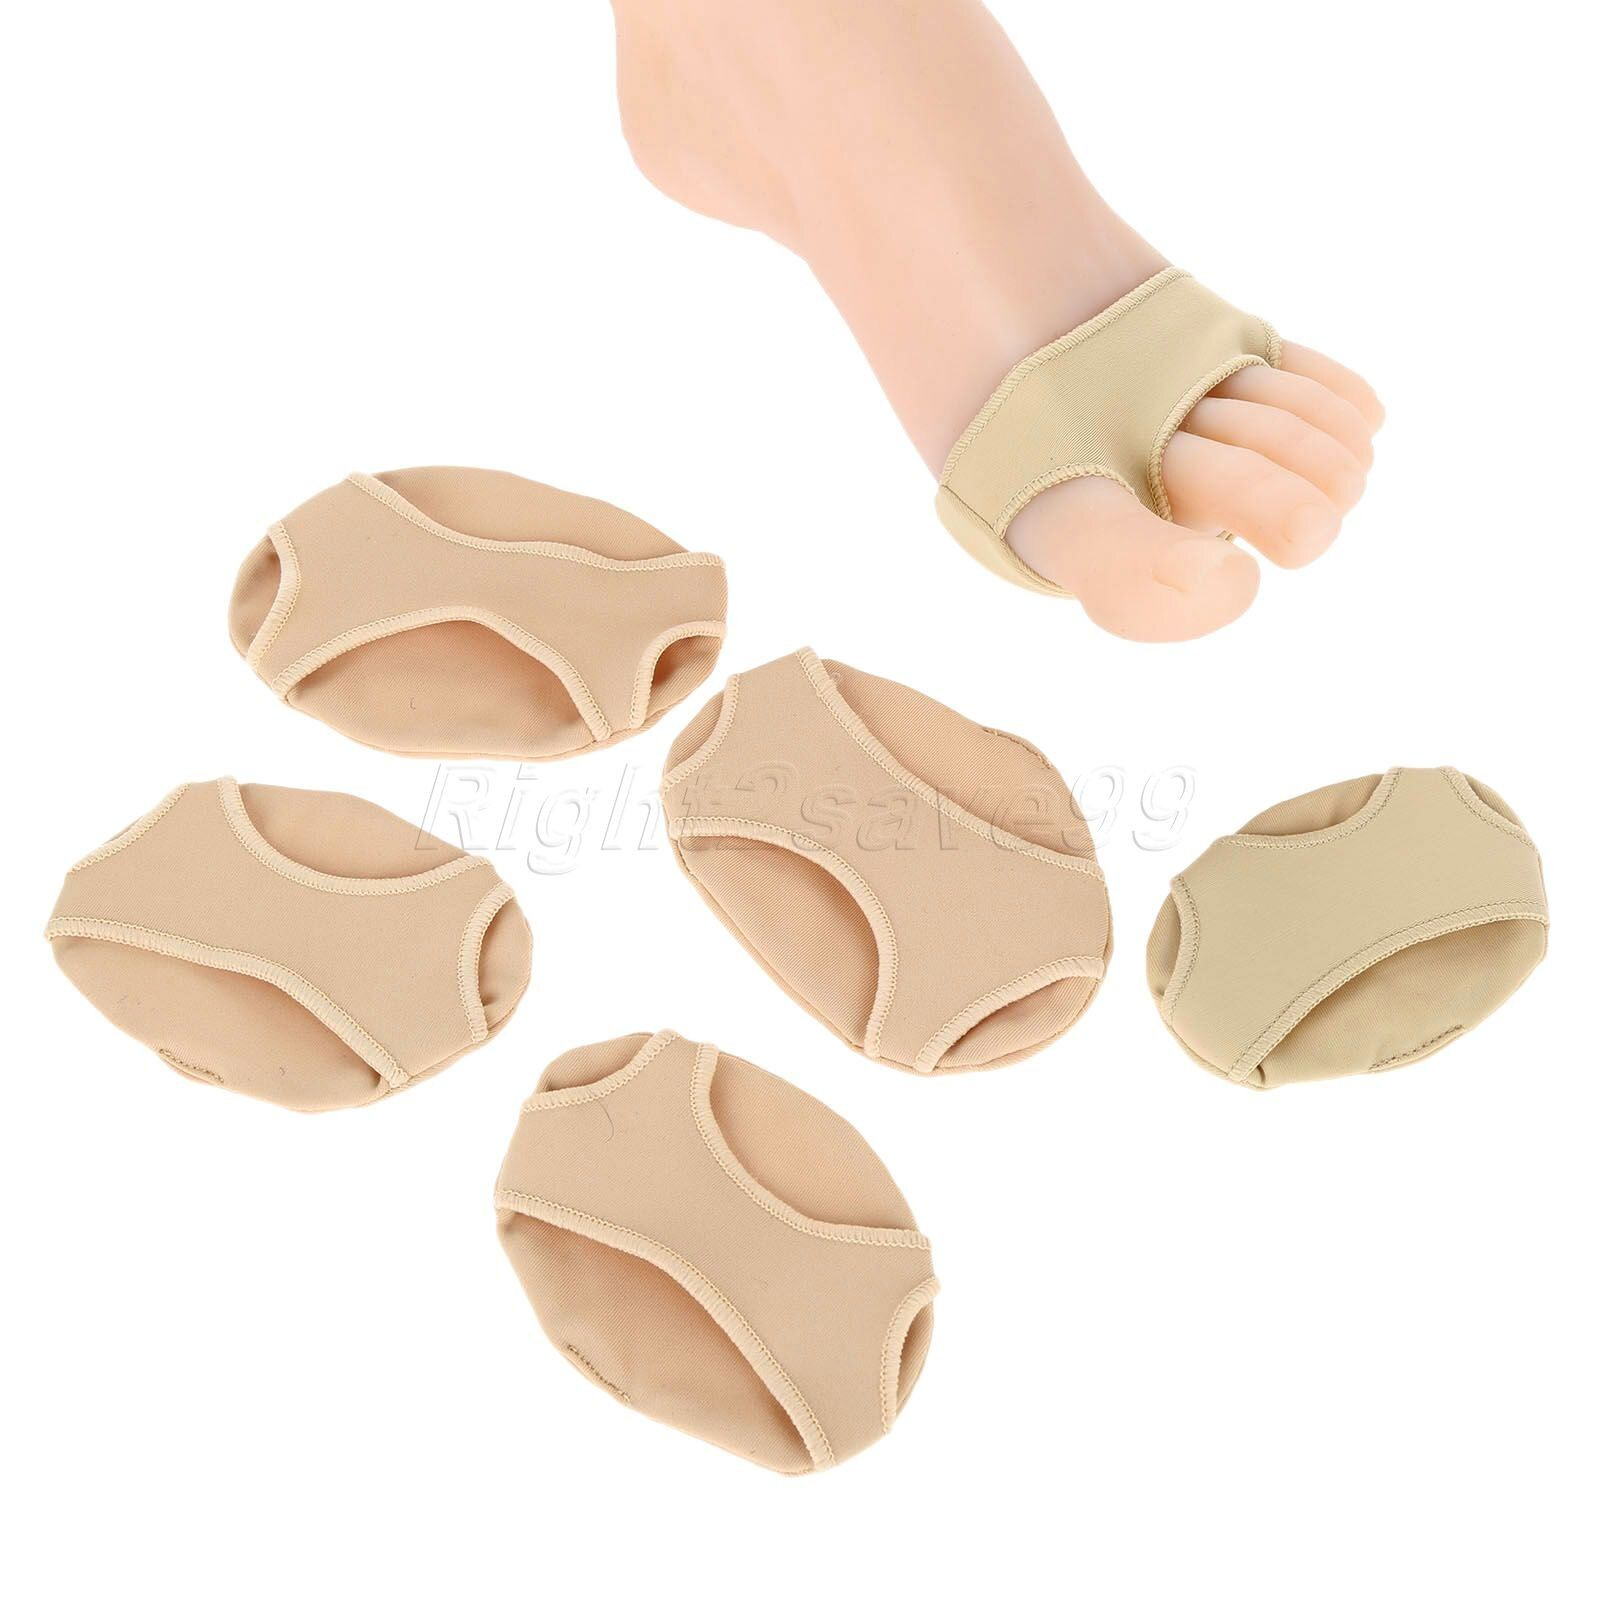 2PCS/1Pair Forefoot Metatarsal Cushion Ball Silicon Gel Pad Foot 3 Hole little Toe Separator Pain Relief S M L